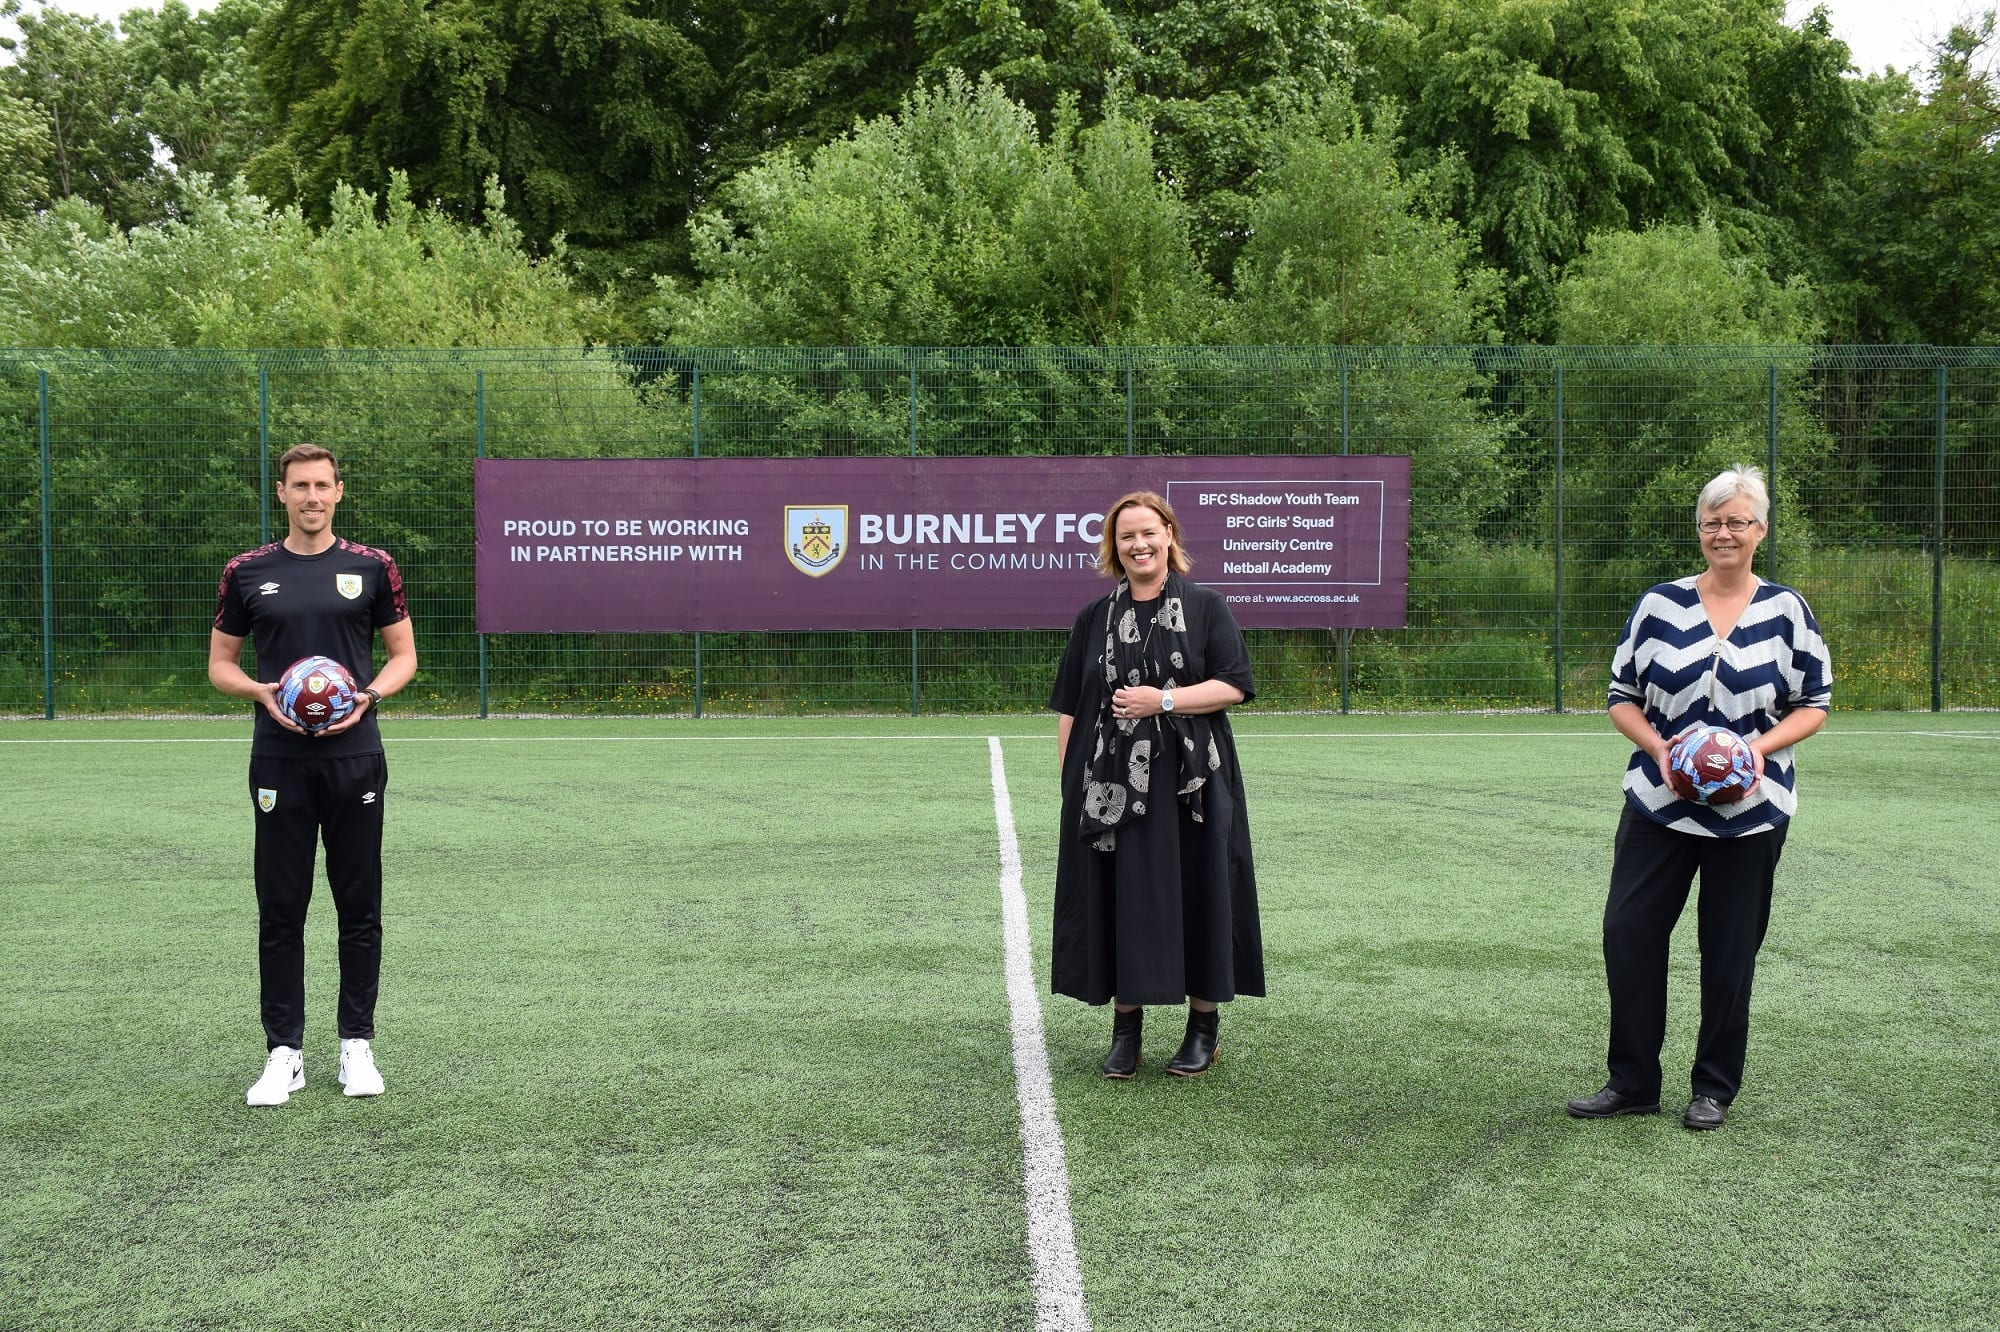 Nelson and Colne College Group's partnership with Burnley FC in the Community has expanded into Higher Education with a new university level qualification.